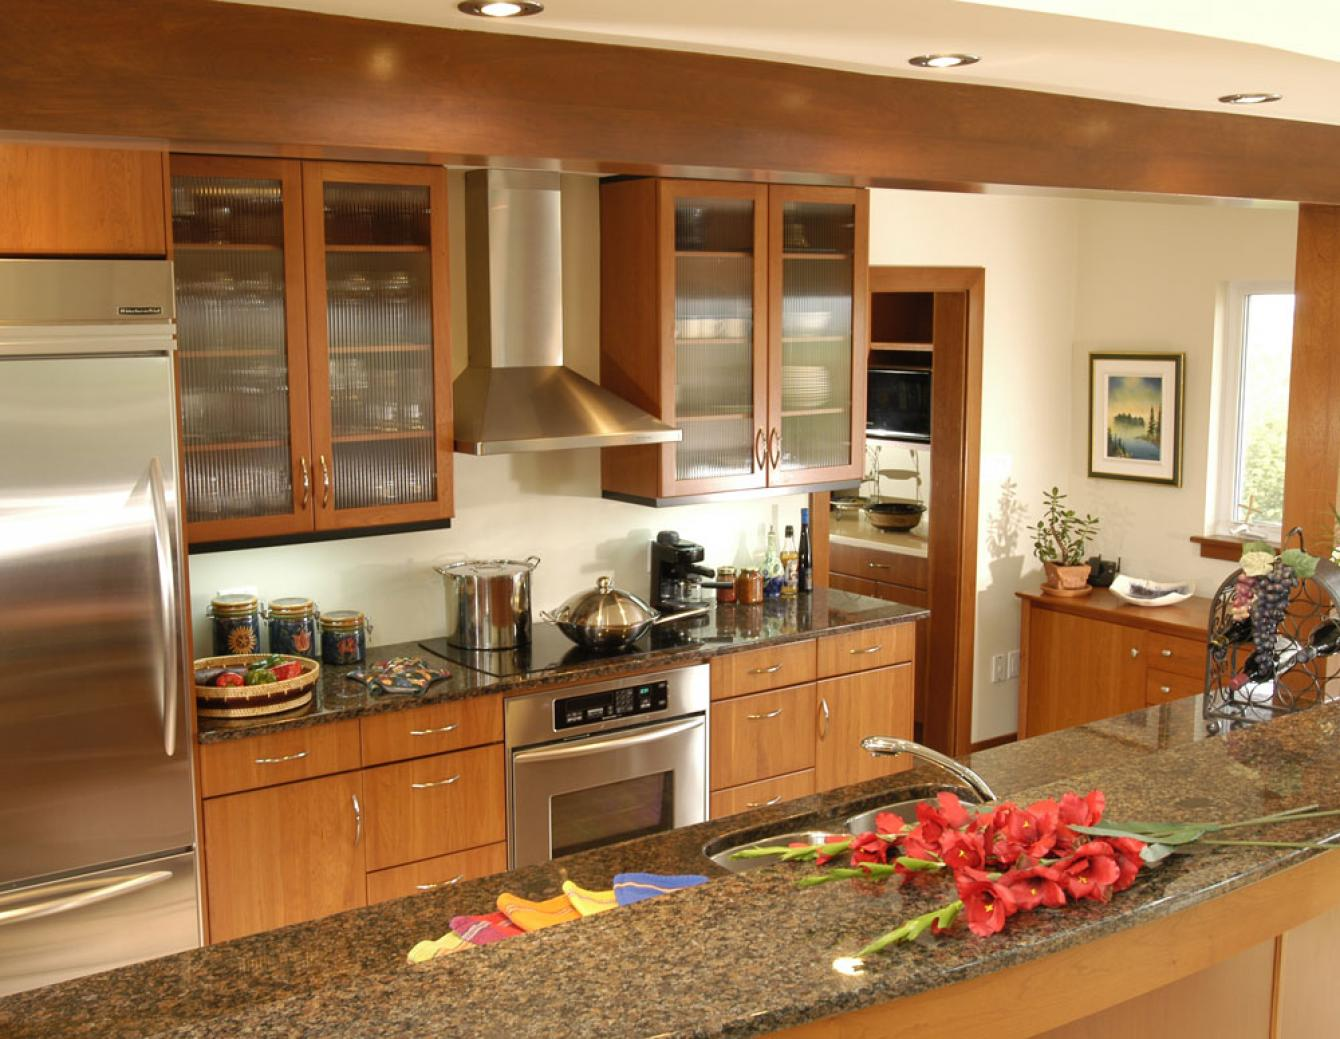 Kitchen design gallery triangle kitchen Small kitchen design gallery